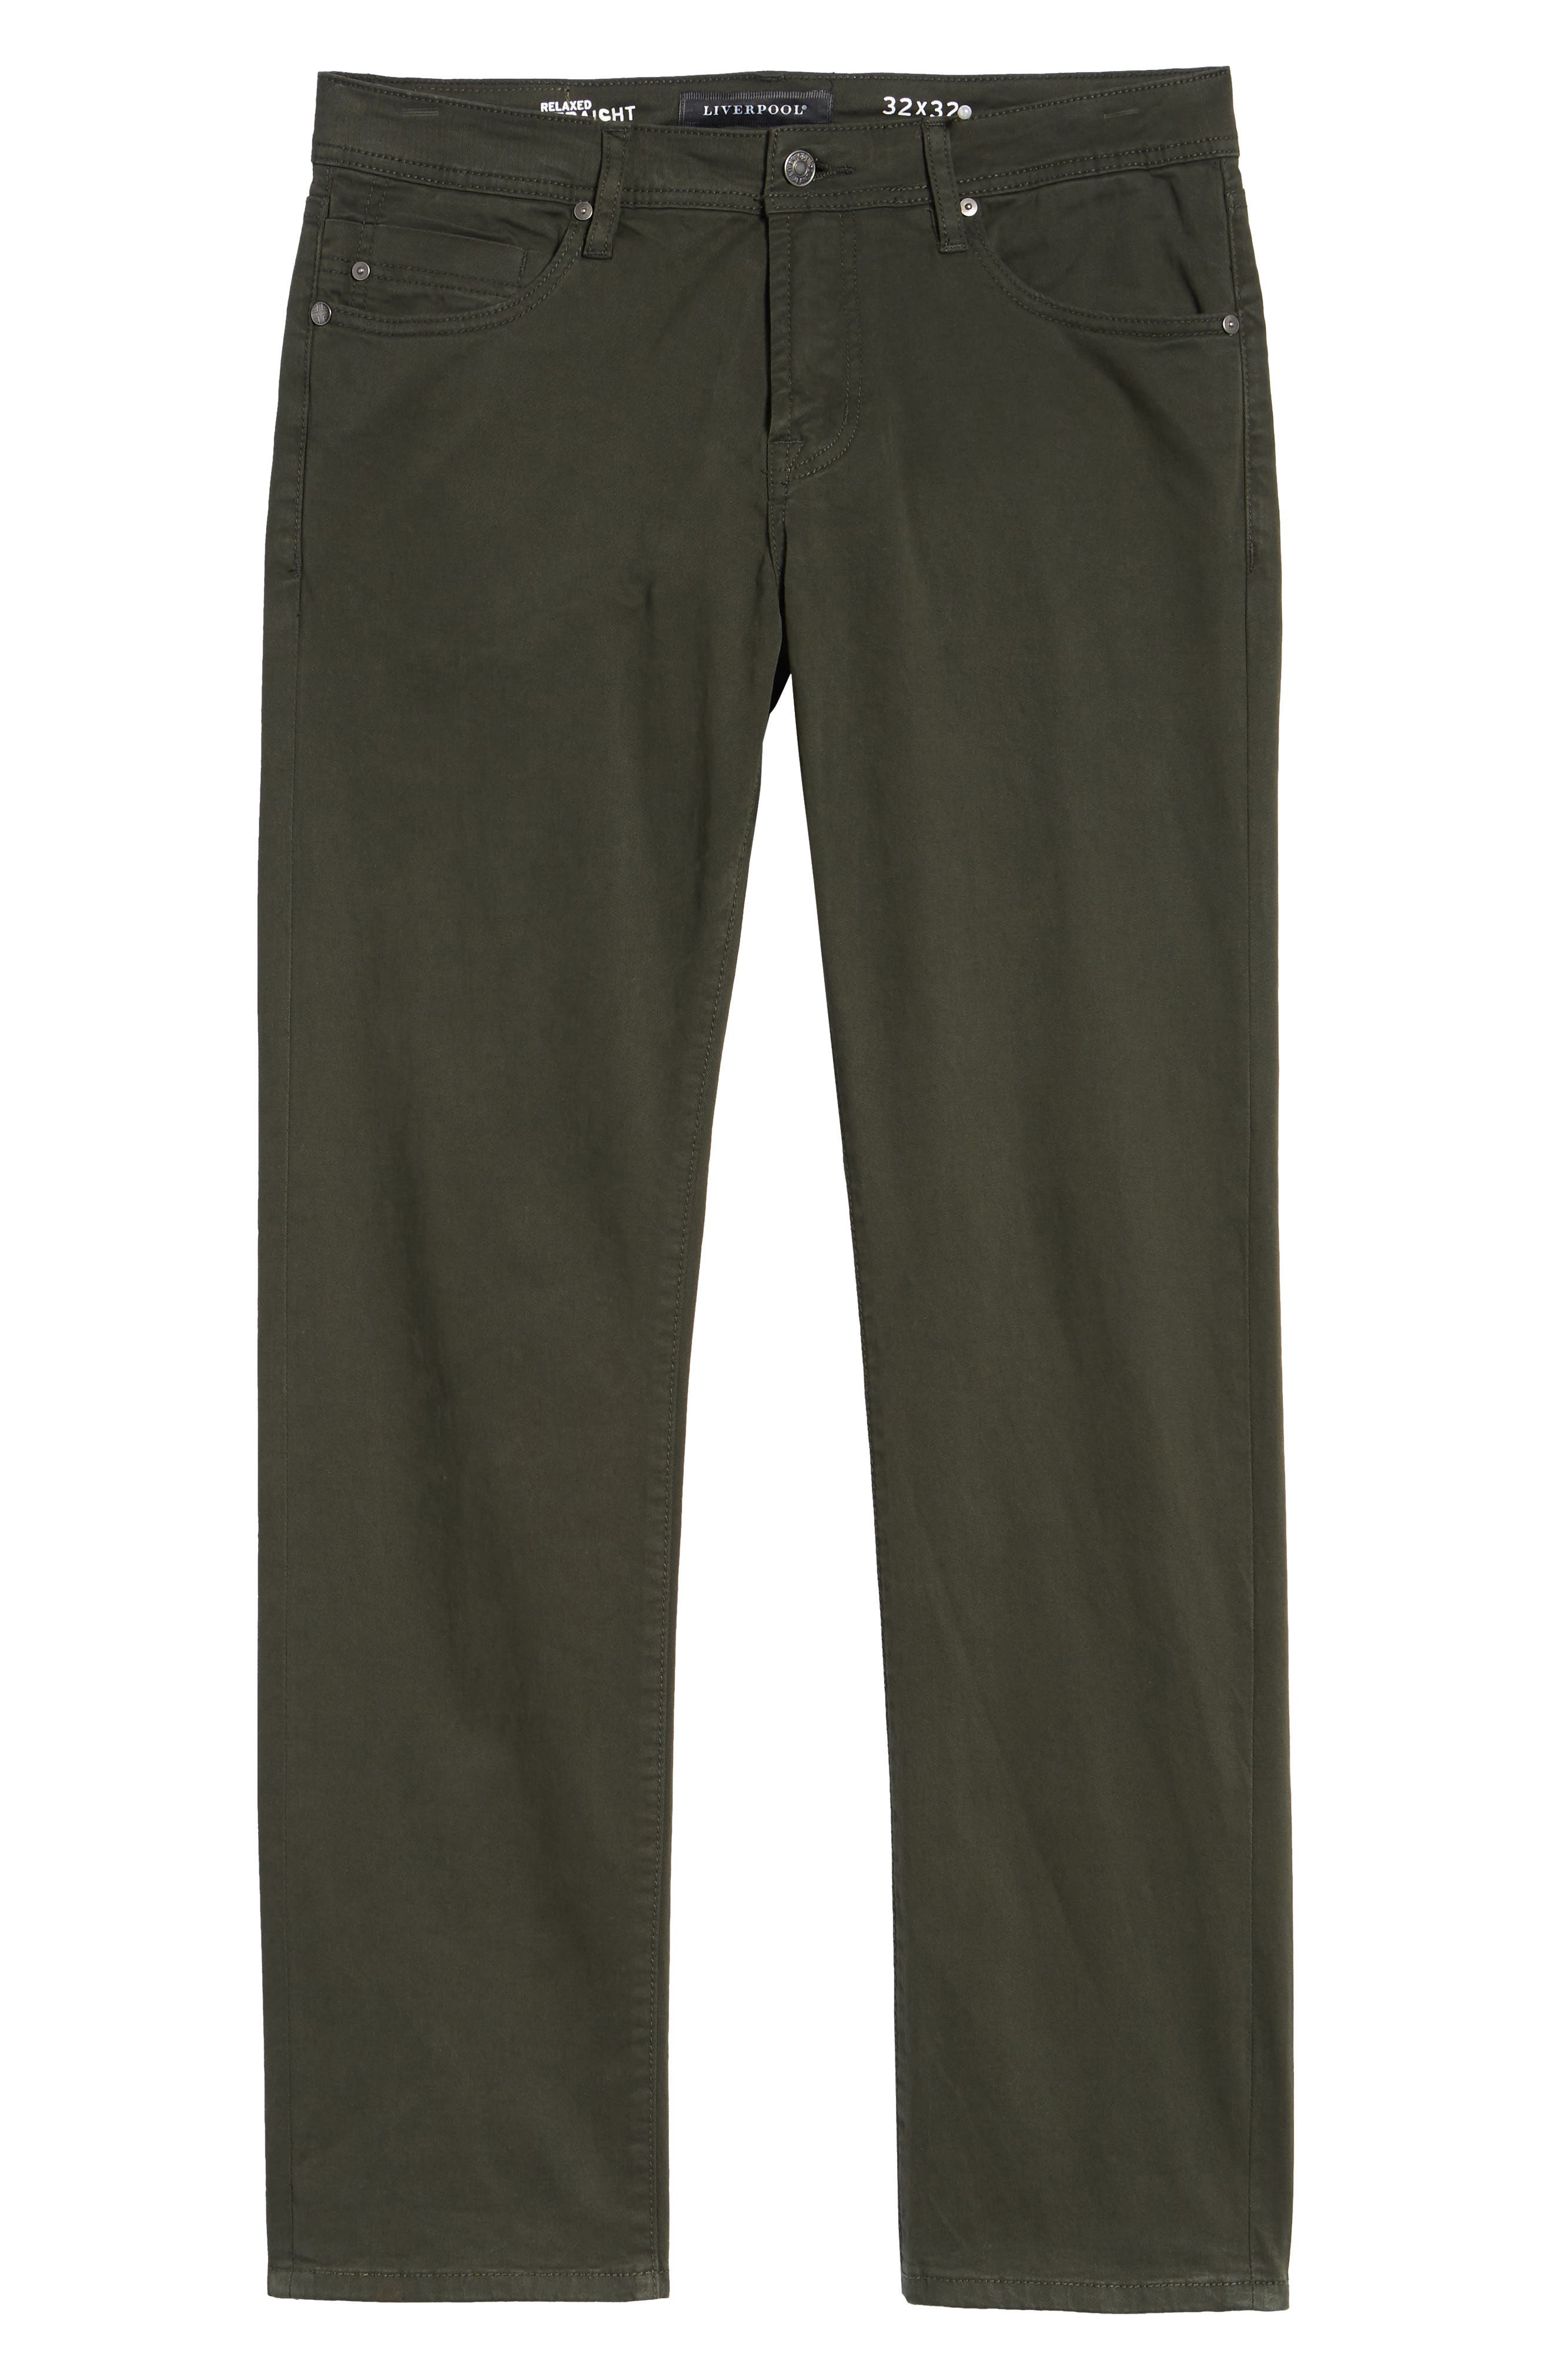 LIVERPOOL, Regent Relaxed Straight Leg Twill Pants, Alternate thumbnail 7, color, OLIVE MULCH